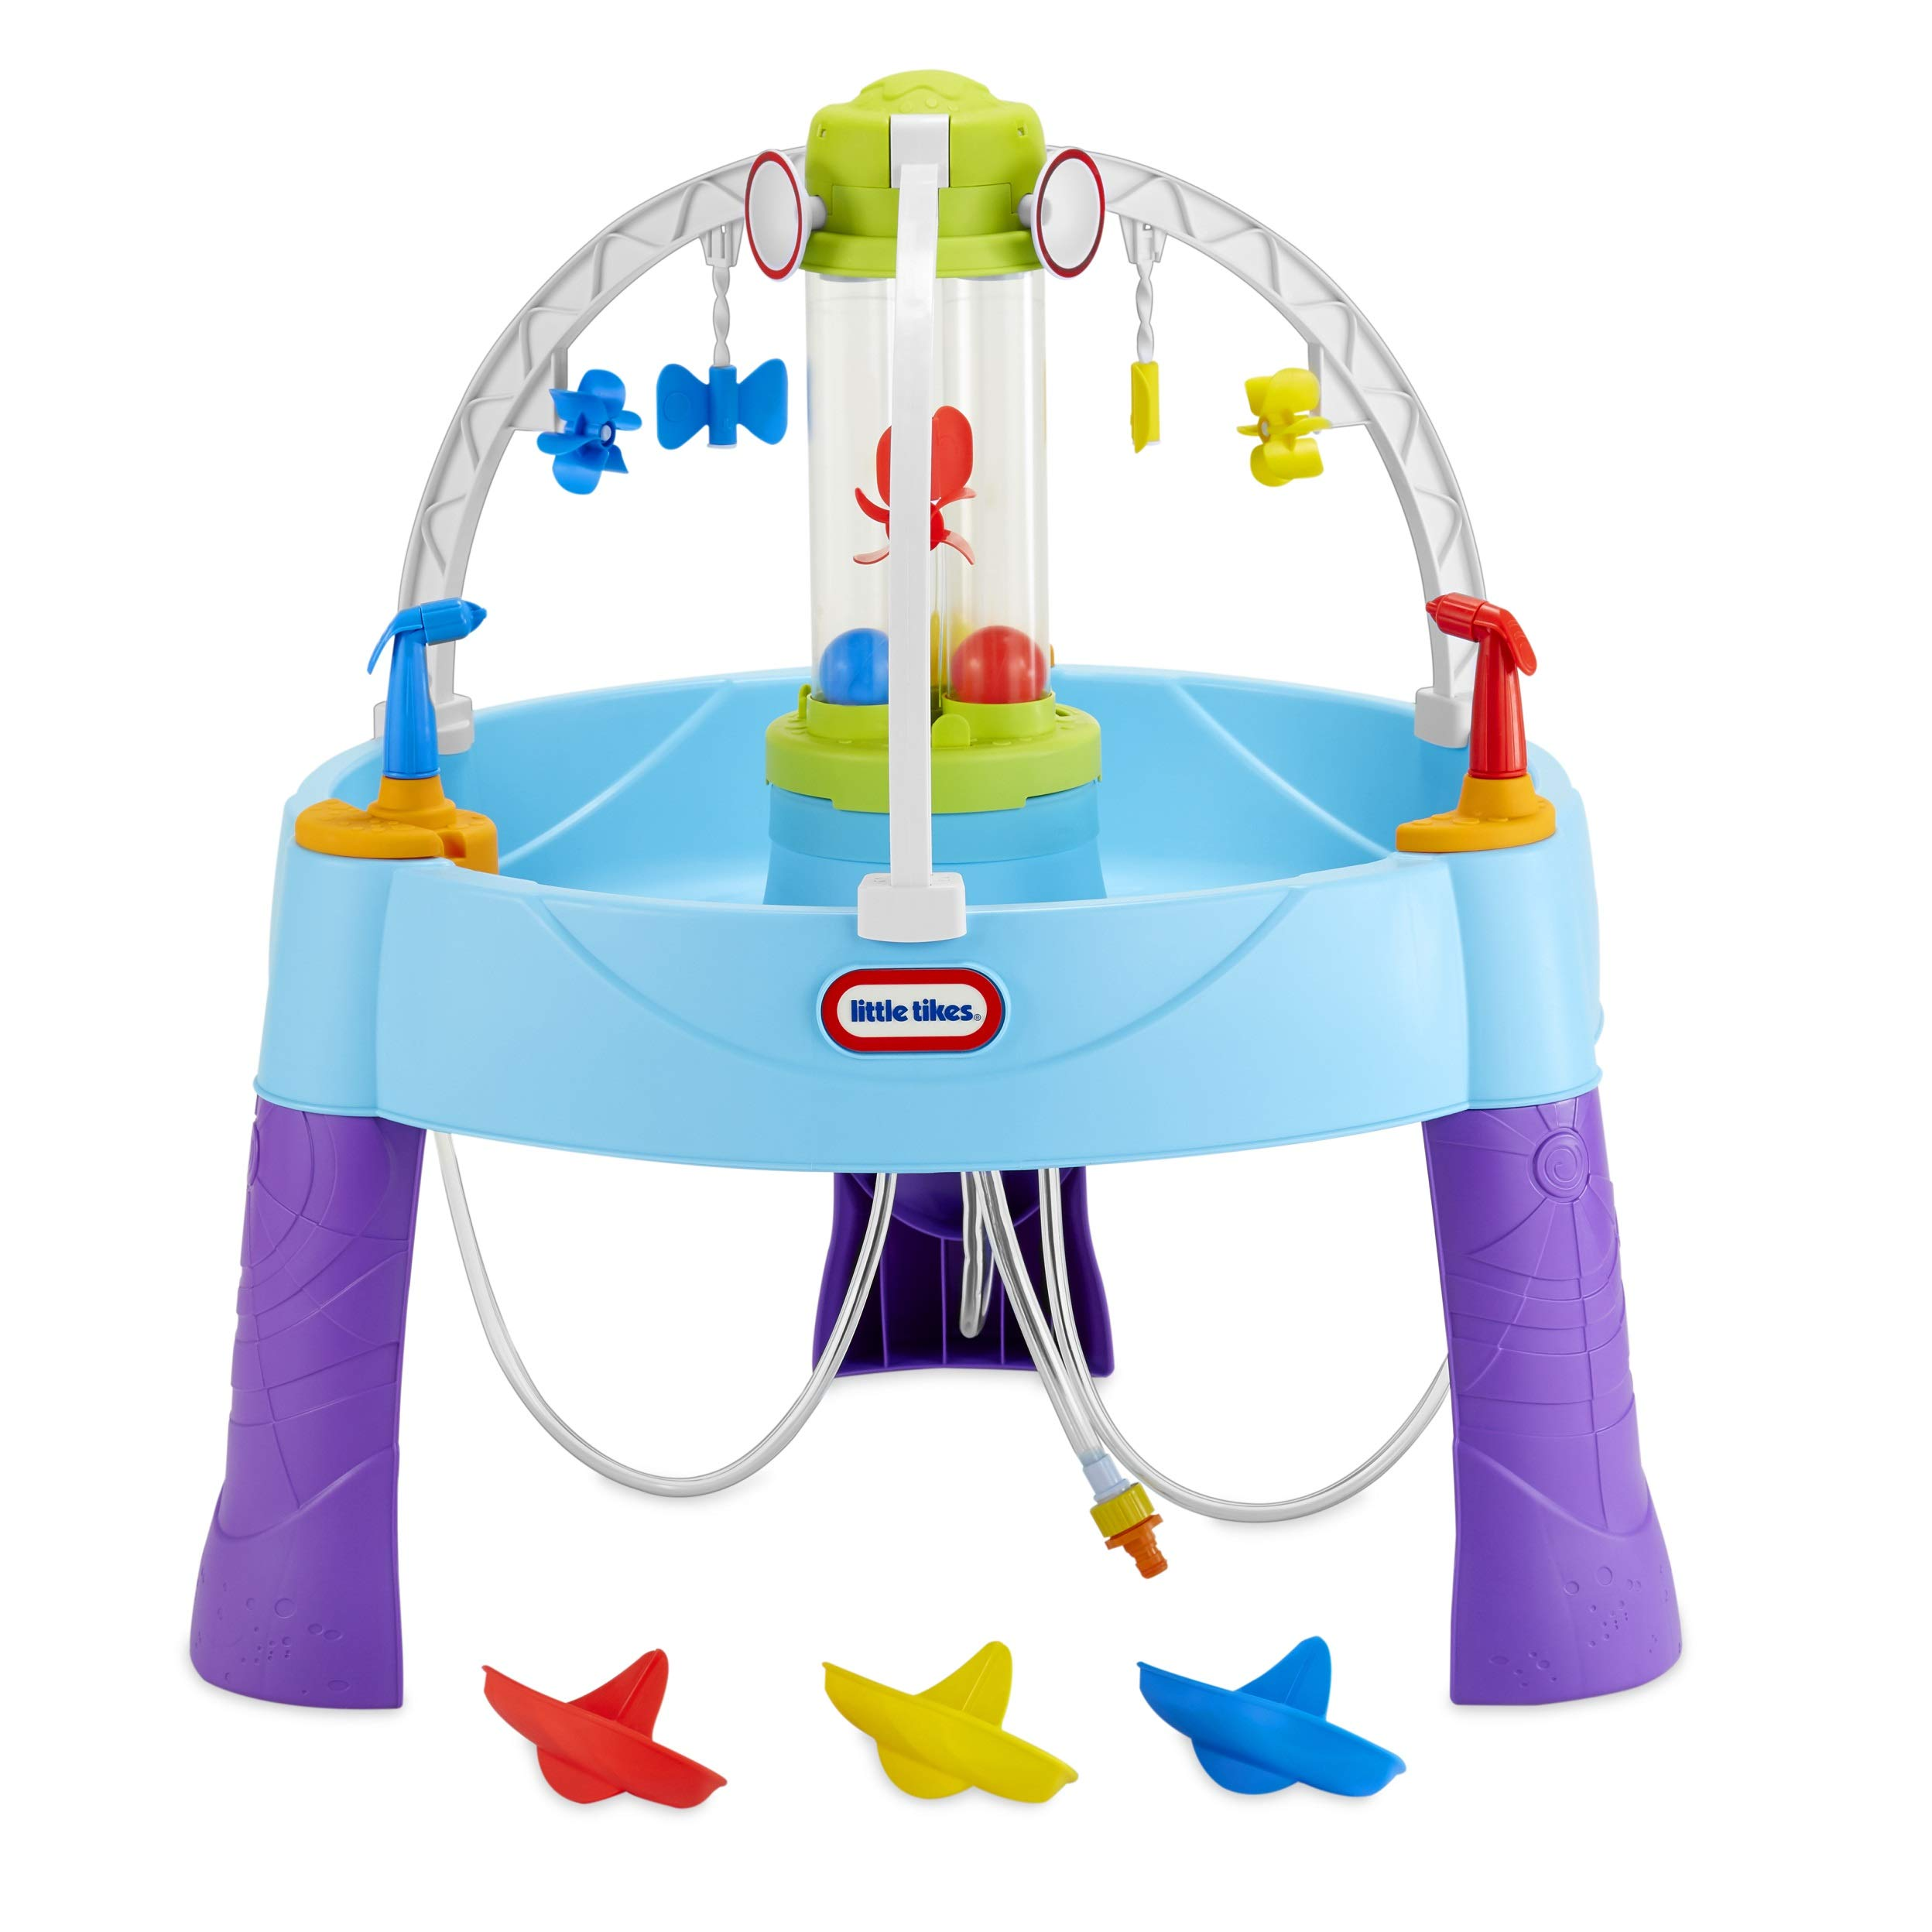 Little Tikes Fun Zone Battle Splash Water Play Table Game for Kids by Little Tikes (Image #1)